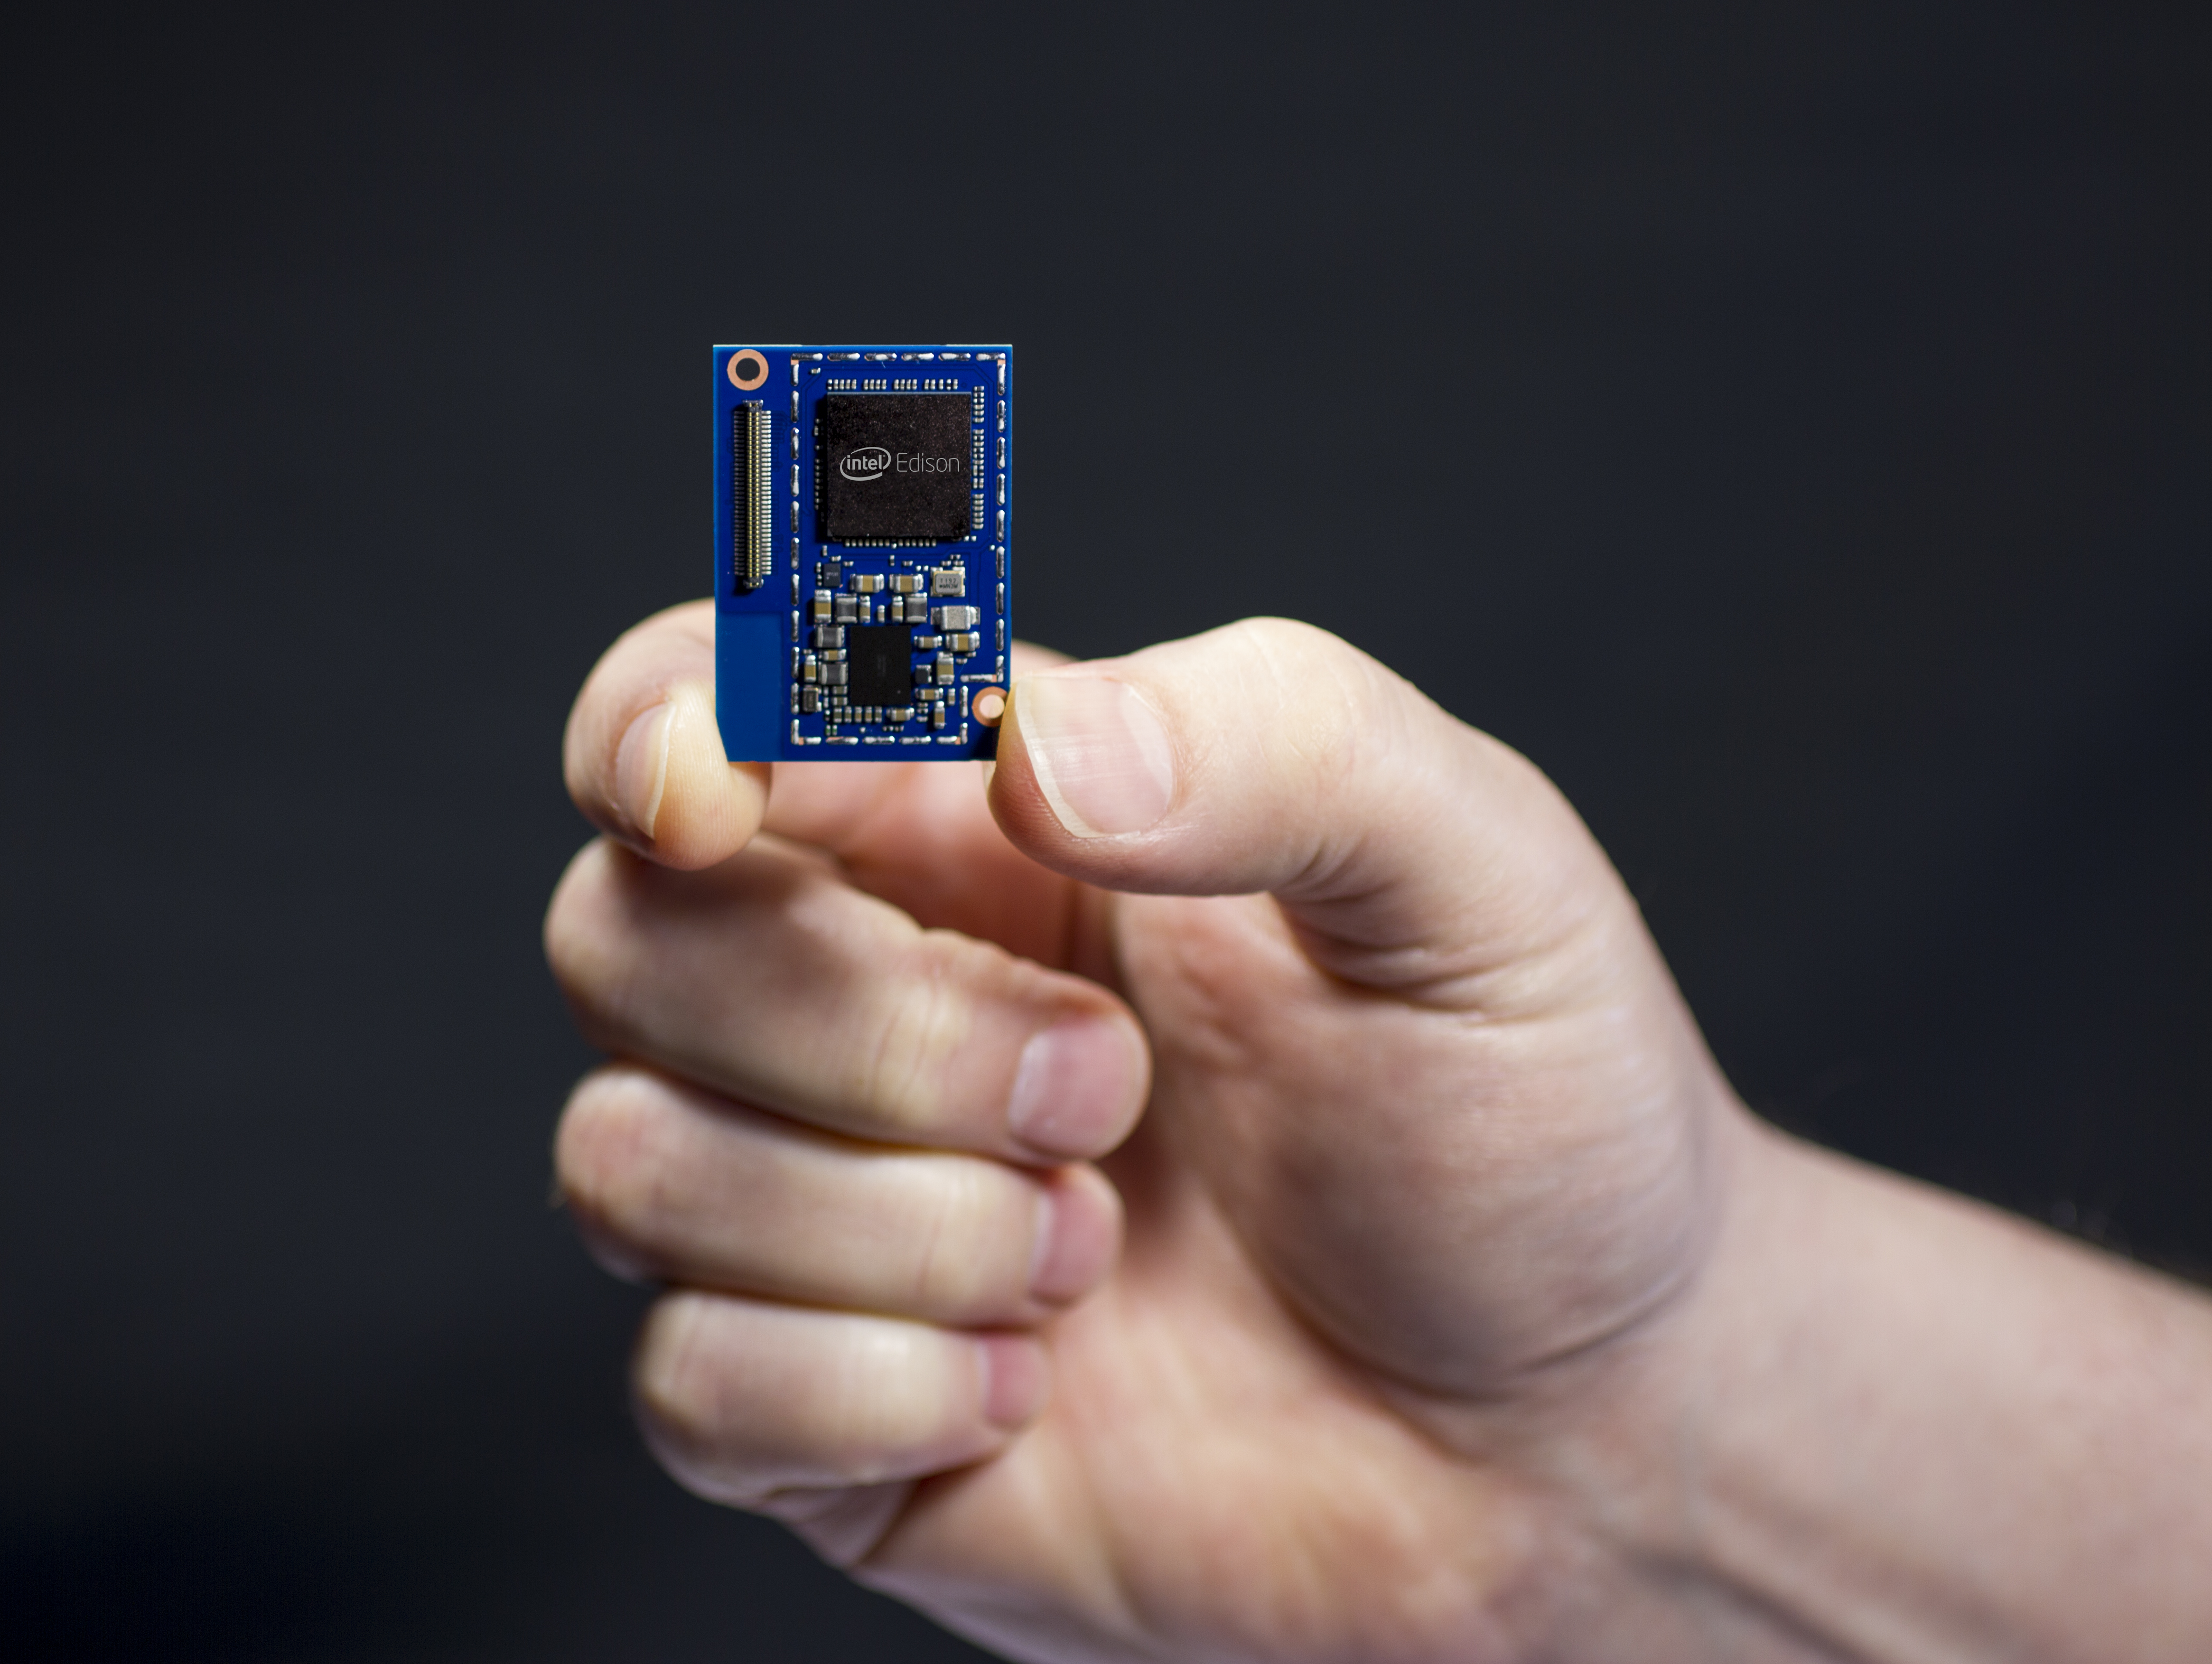 Intel's new Edison development platform, one key to the company's bid to dominate the Internet of Things.